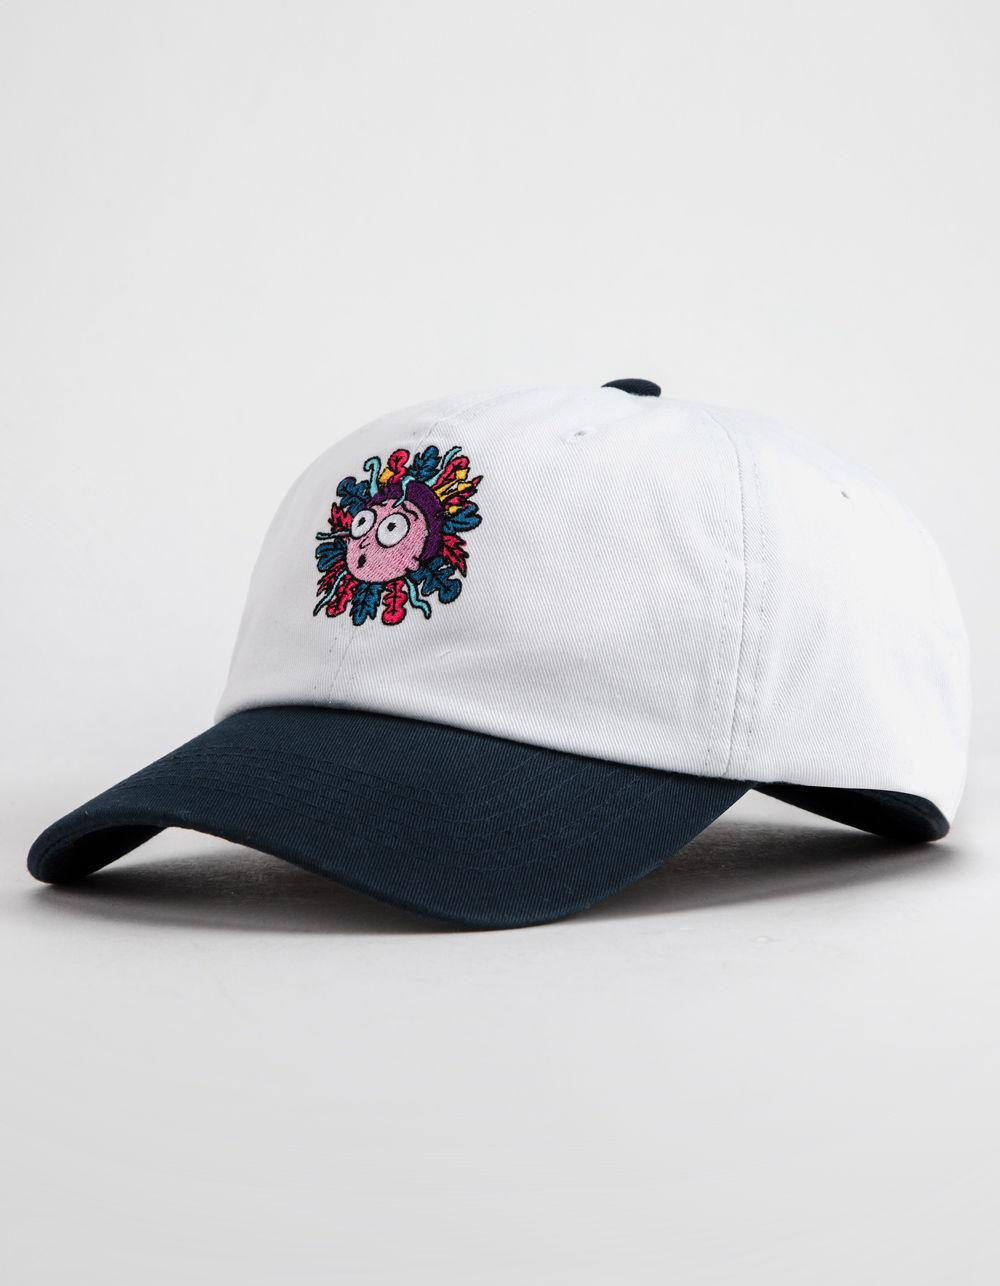 a9f2725a376 Lyst - Primitive X Rick And Morty White   Navy Dad Hat in White for Men